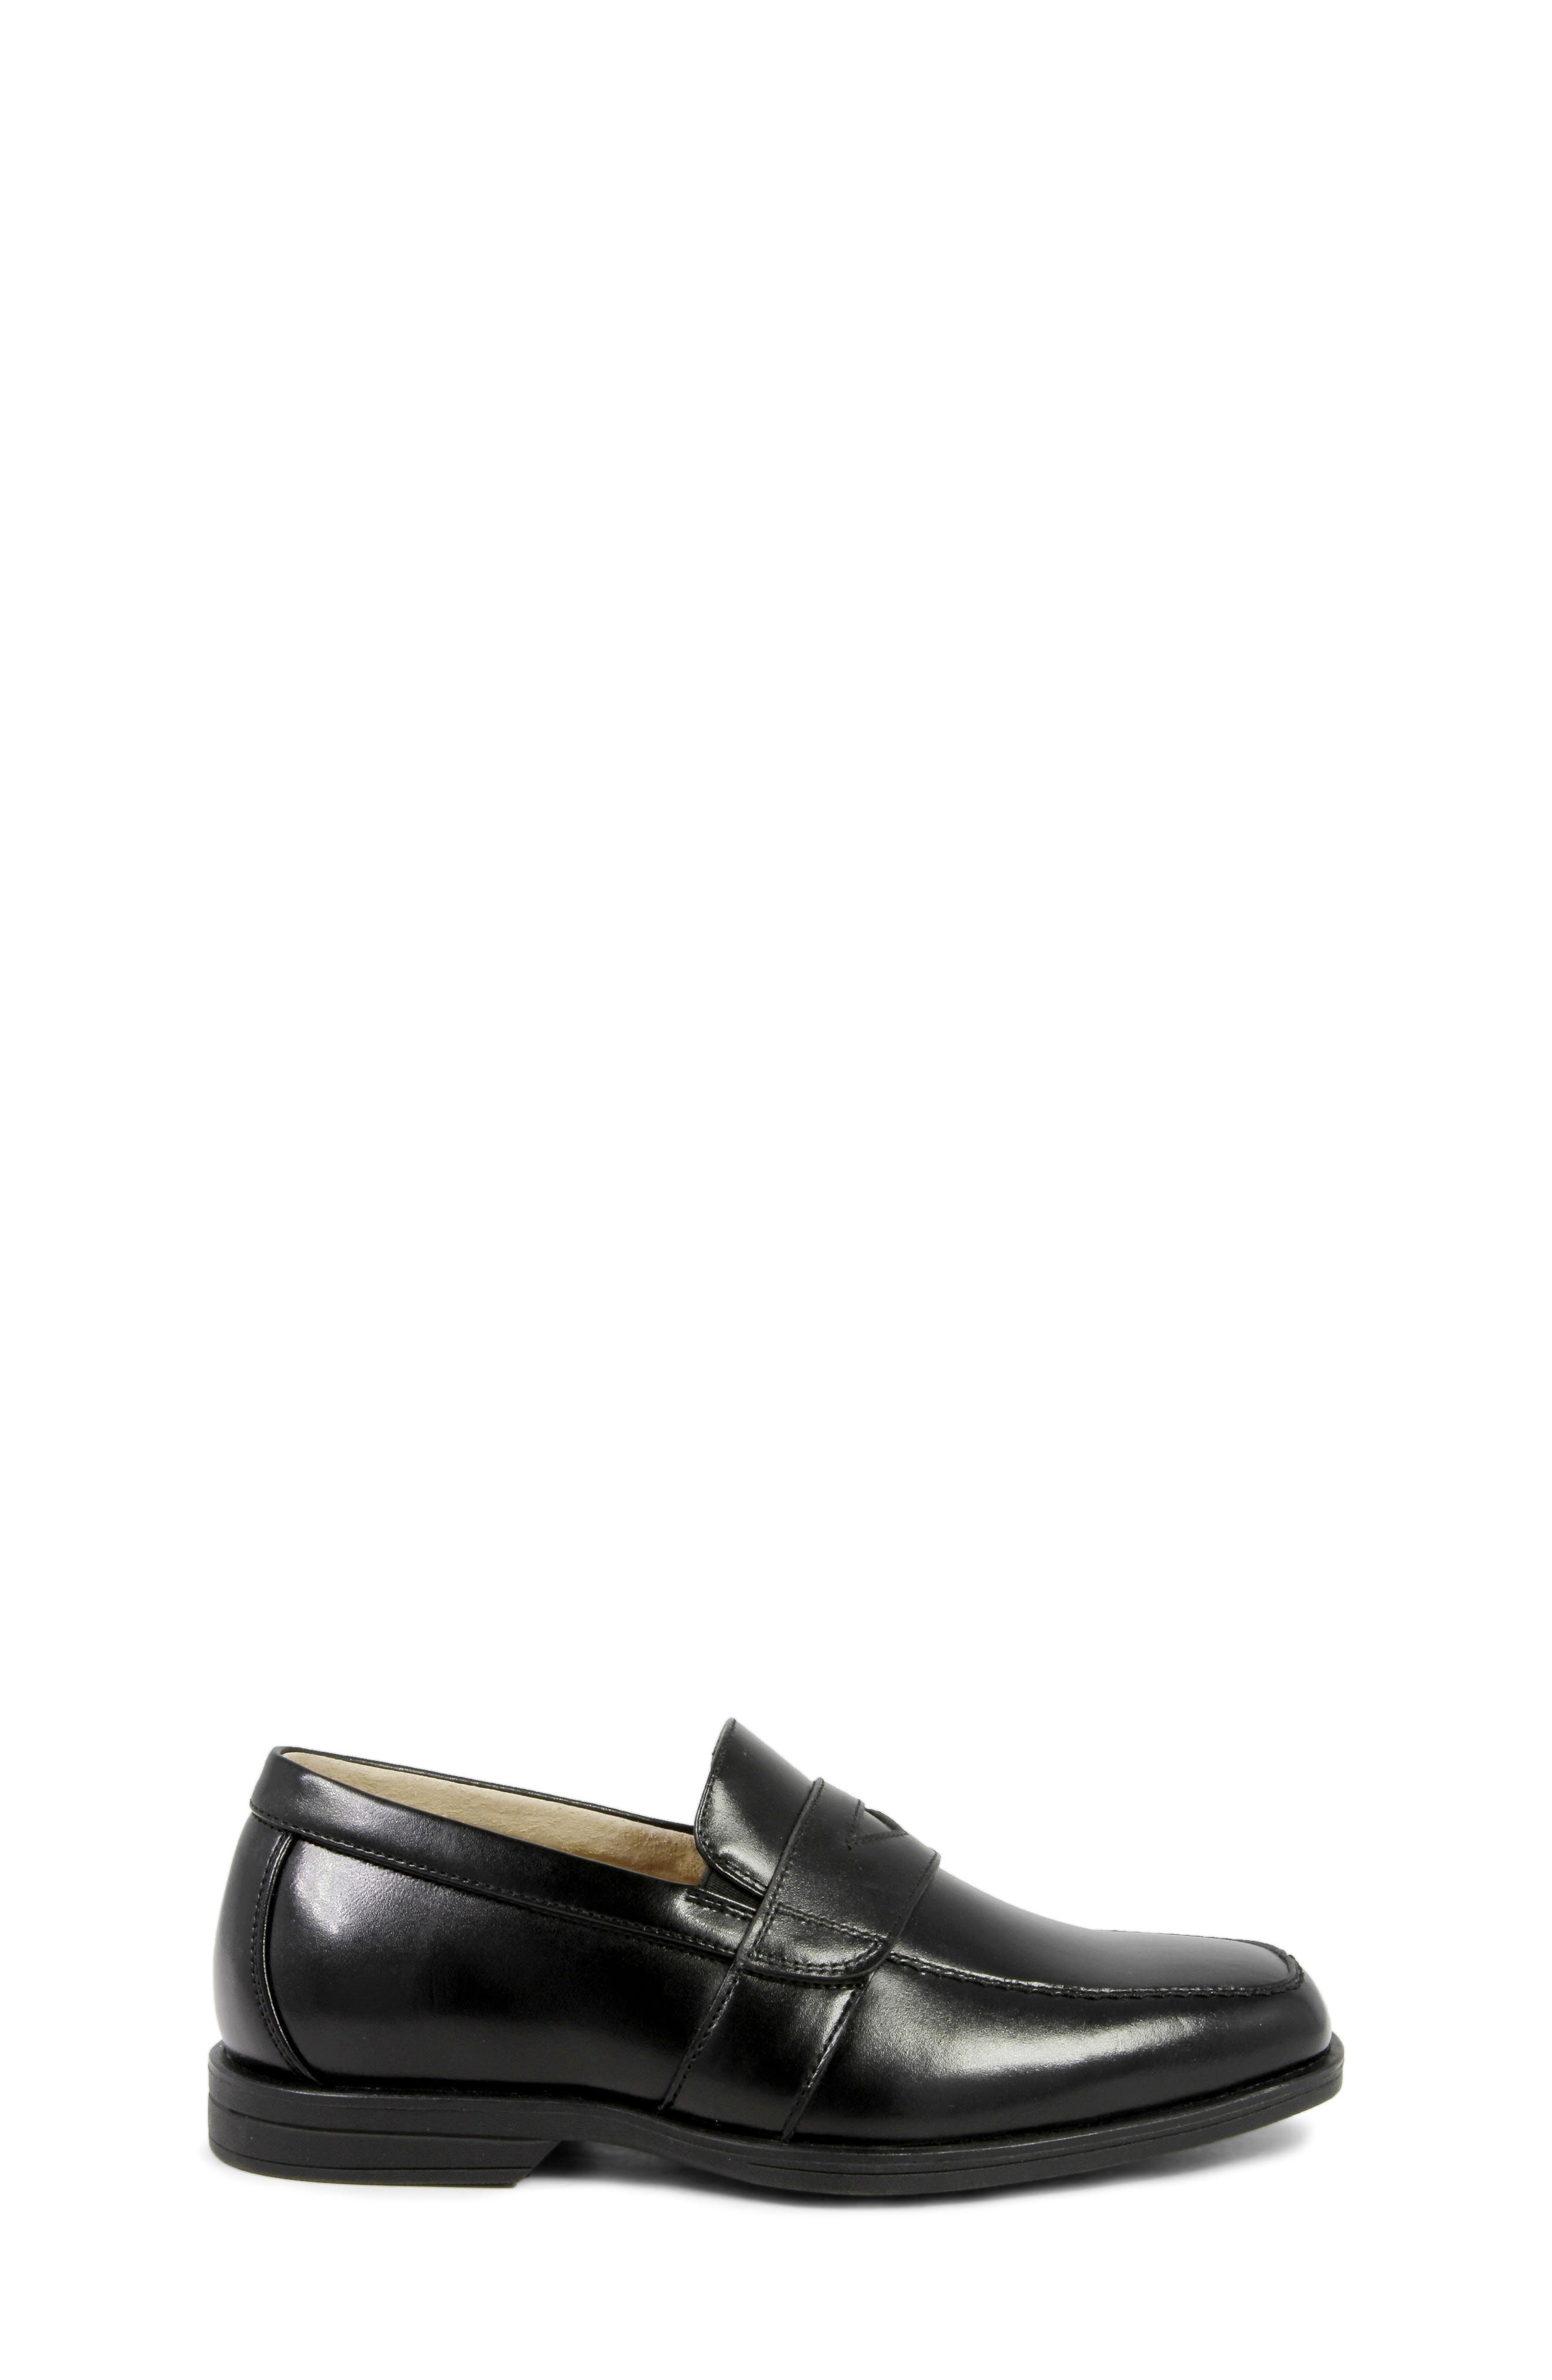 'Reveal' Penny Loafer,                             Alternate thumbnail 3, color,                             BLACK